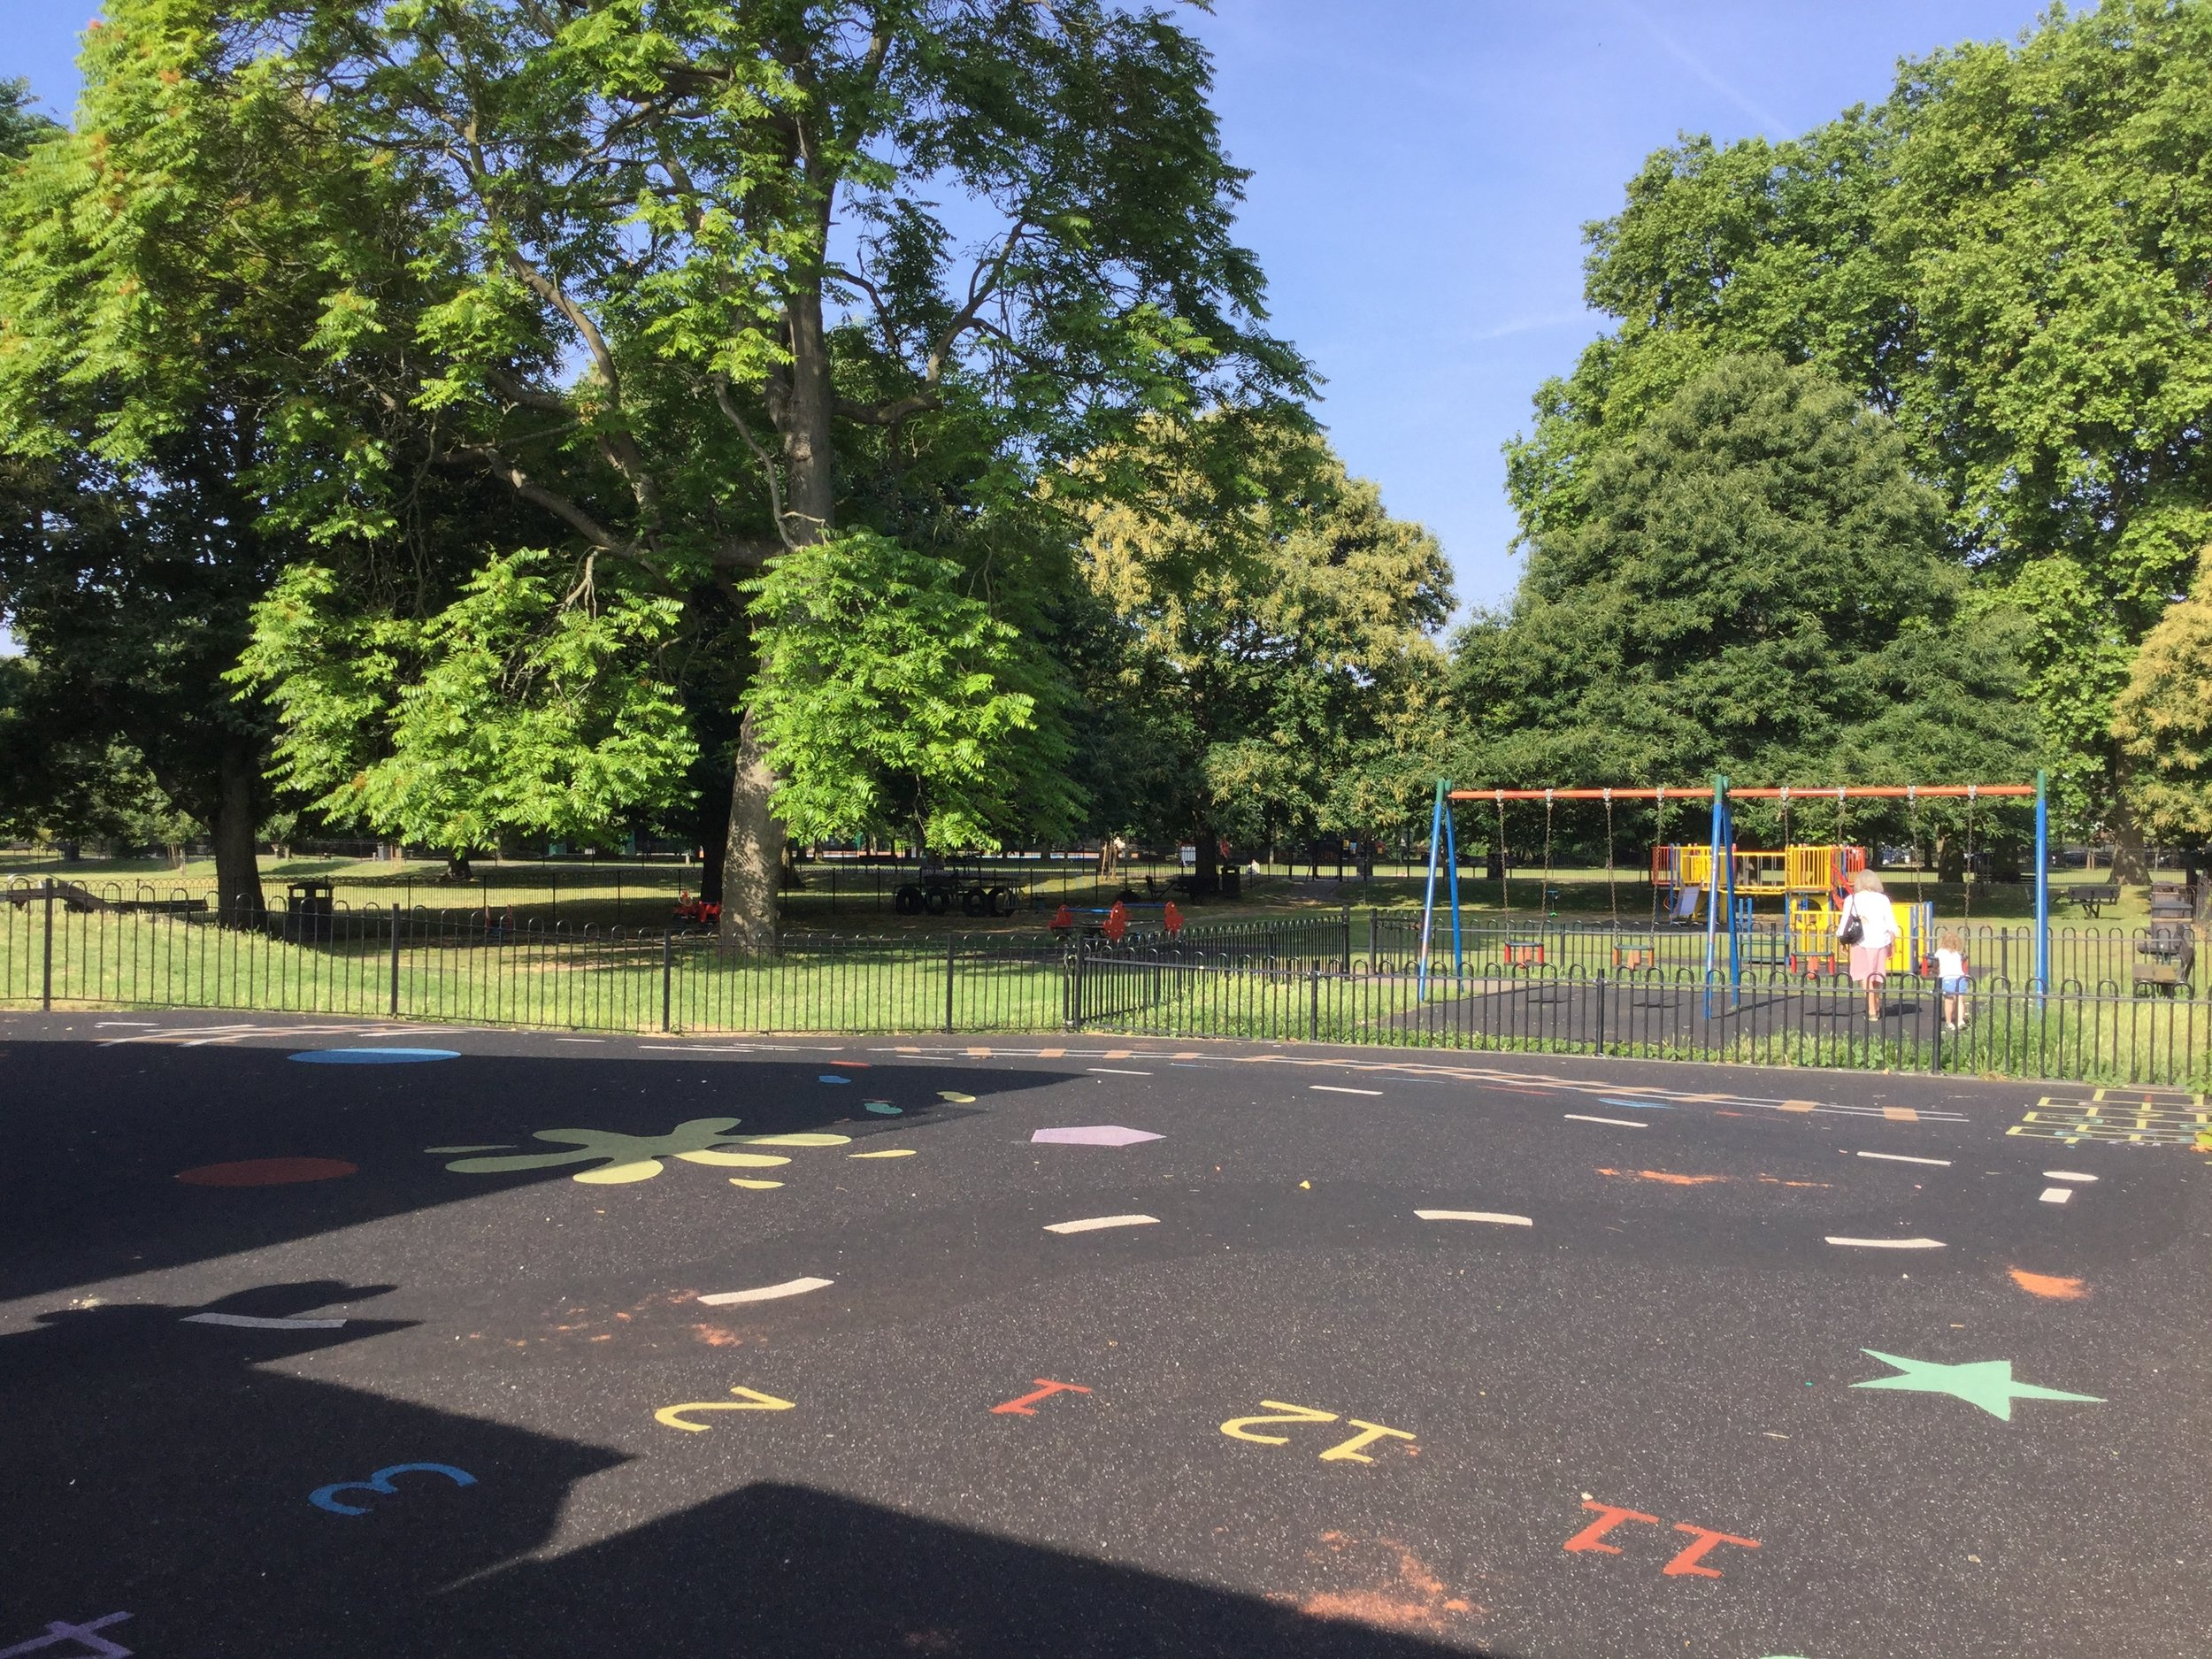 We're lucky to have a great outside place that the children enjoy playing in.